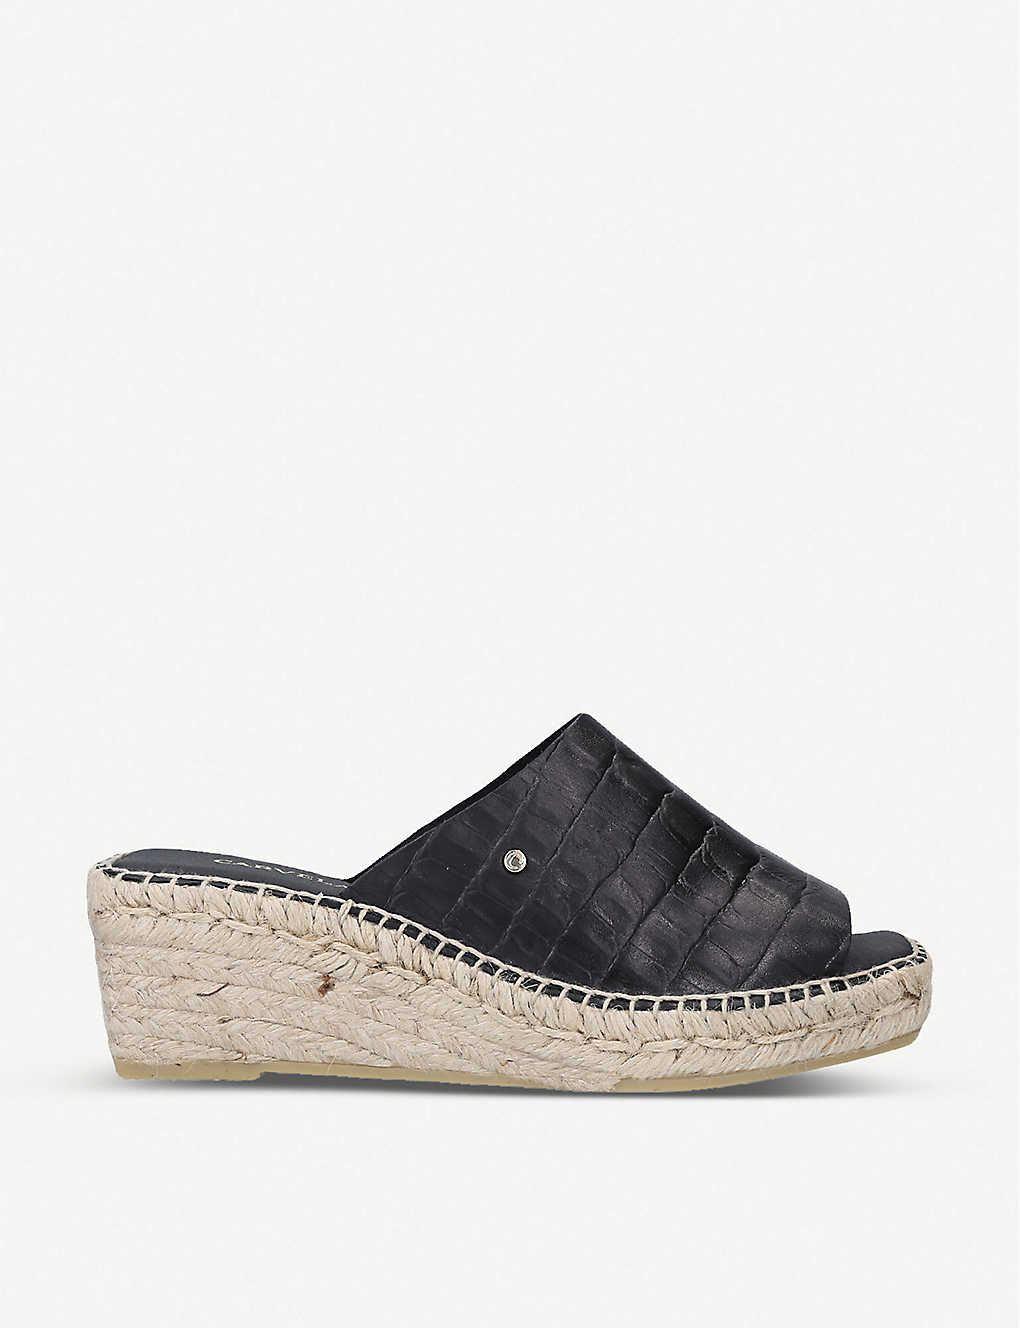 CARVELA: Konform croc-embossed leather wedge sandals